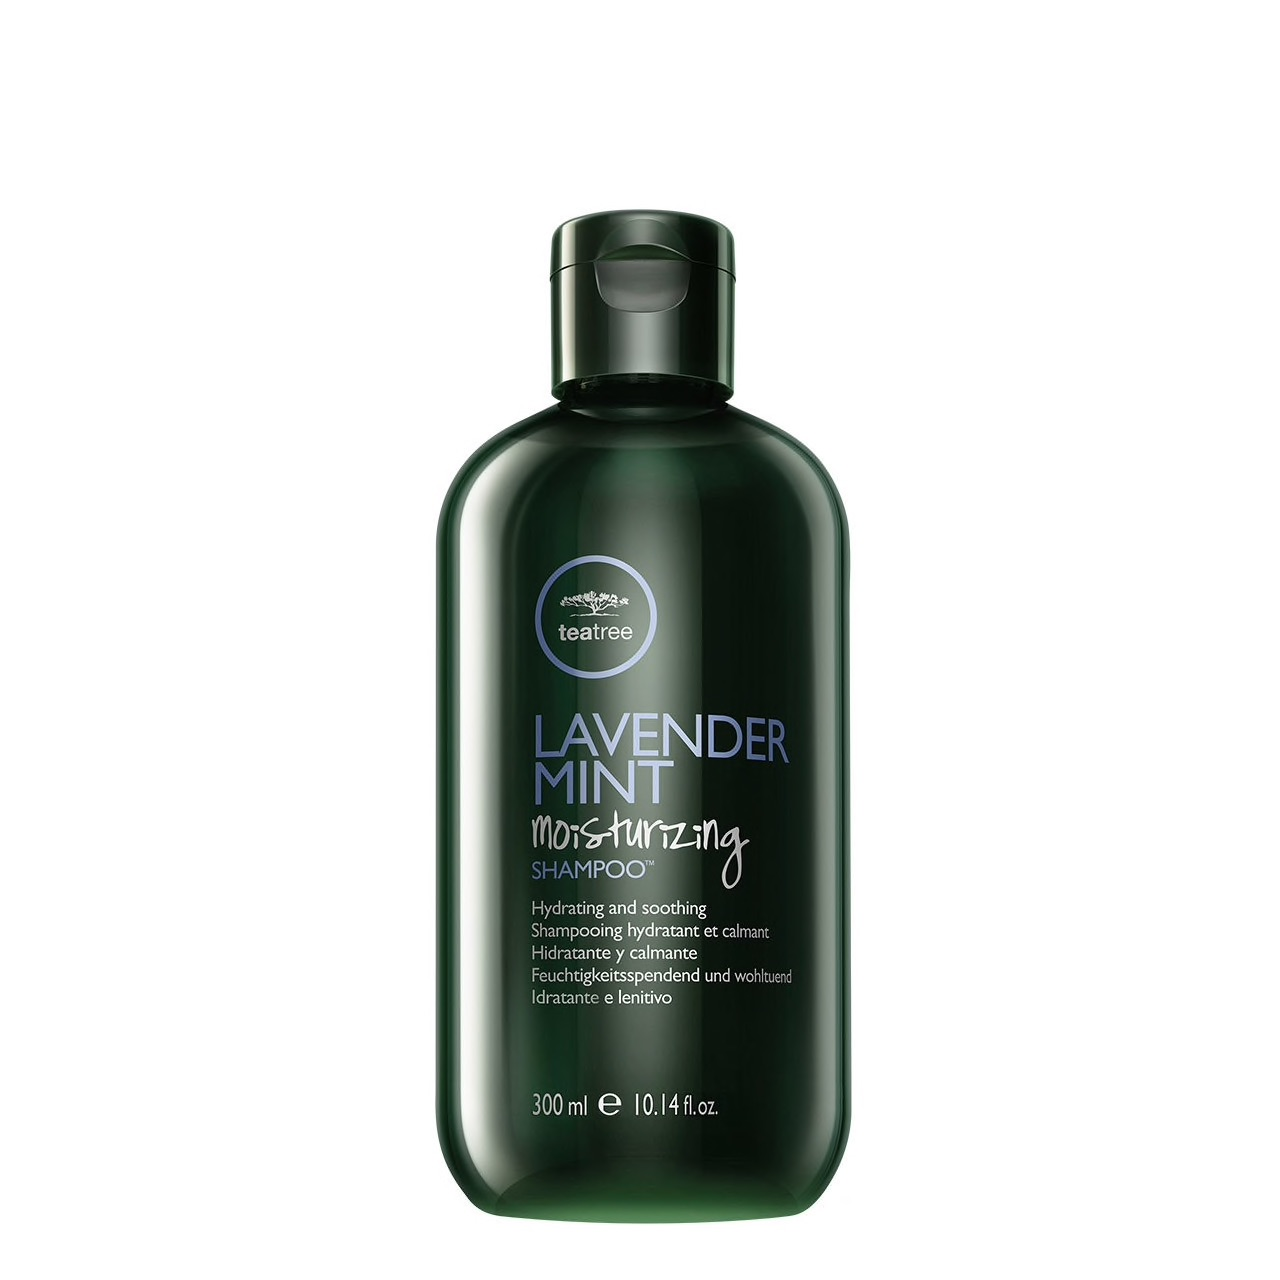 Lavender Mint Moisturizing Shampoo by Paul Mitchell